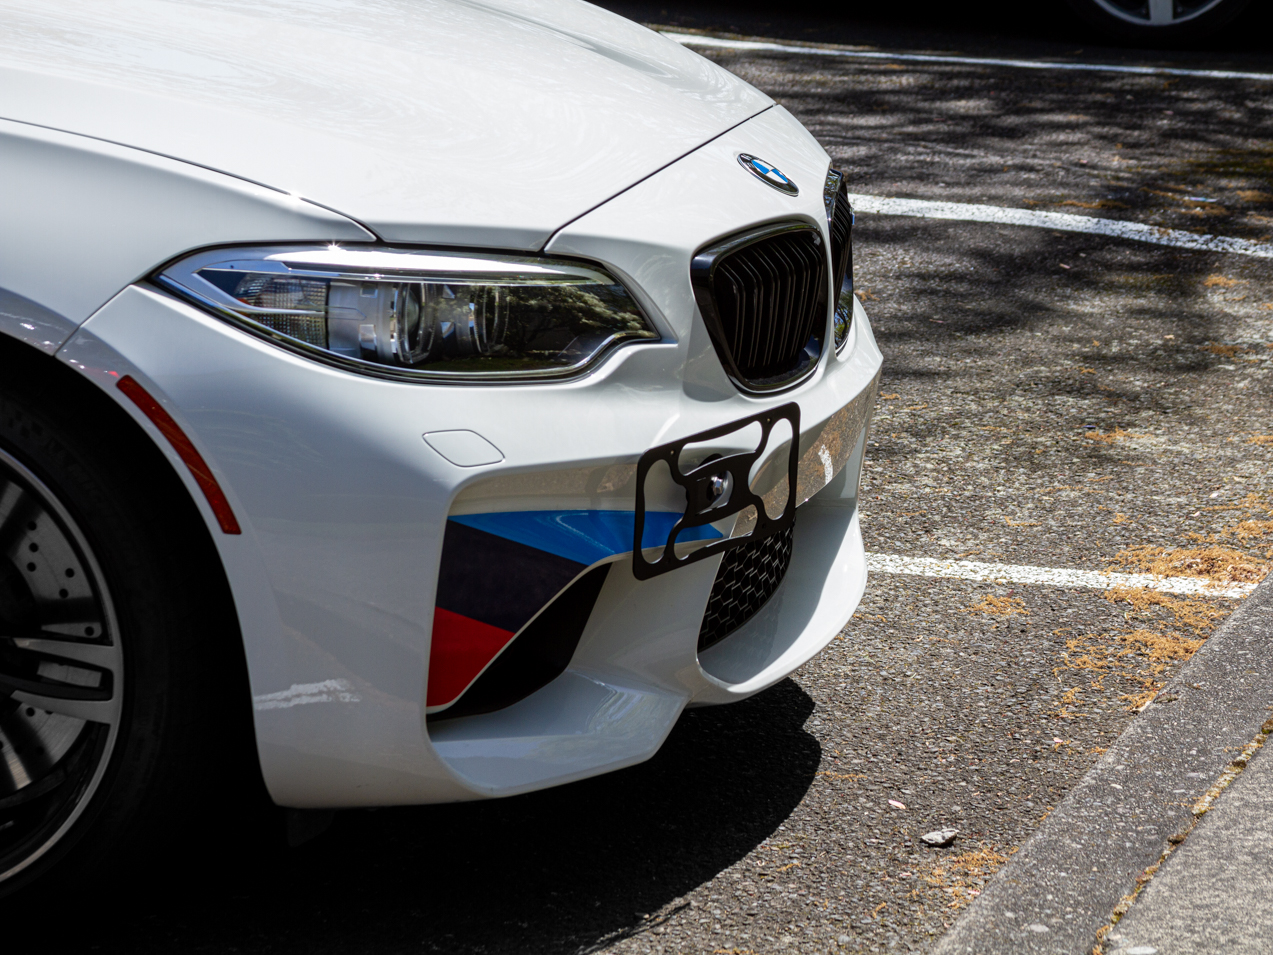 The CravenSpeed Platypus Front License Plate Mount installed on a 2017 BMW M2 F87.